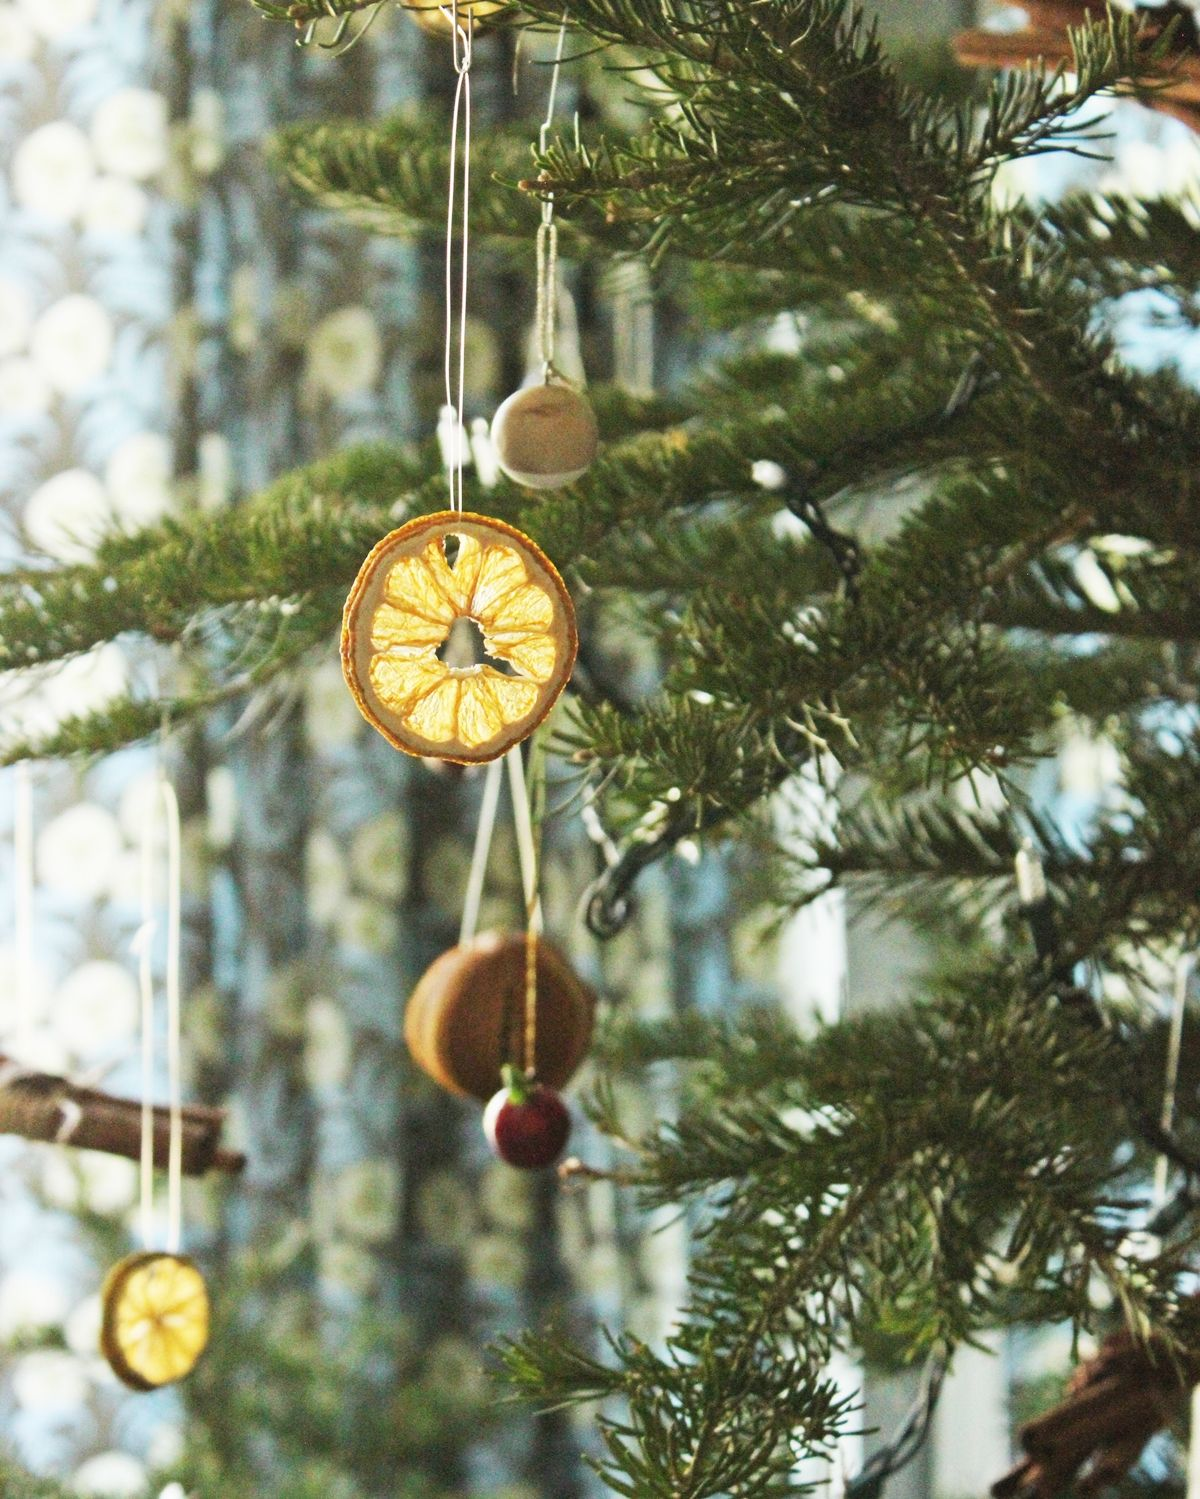 Making Natural Christmas Decorations: Homemade Christmas Tree Ornaments: A Natural Roundup